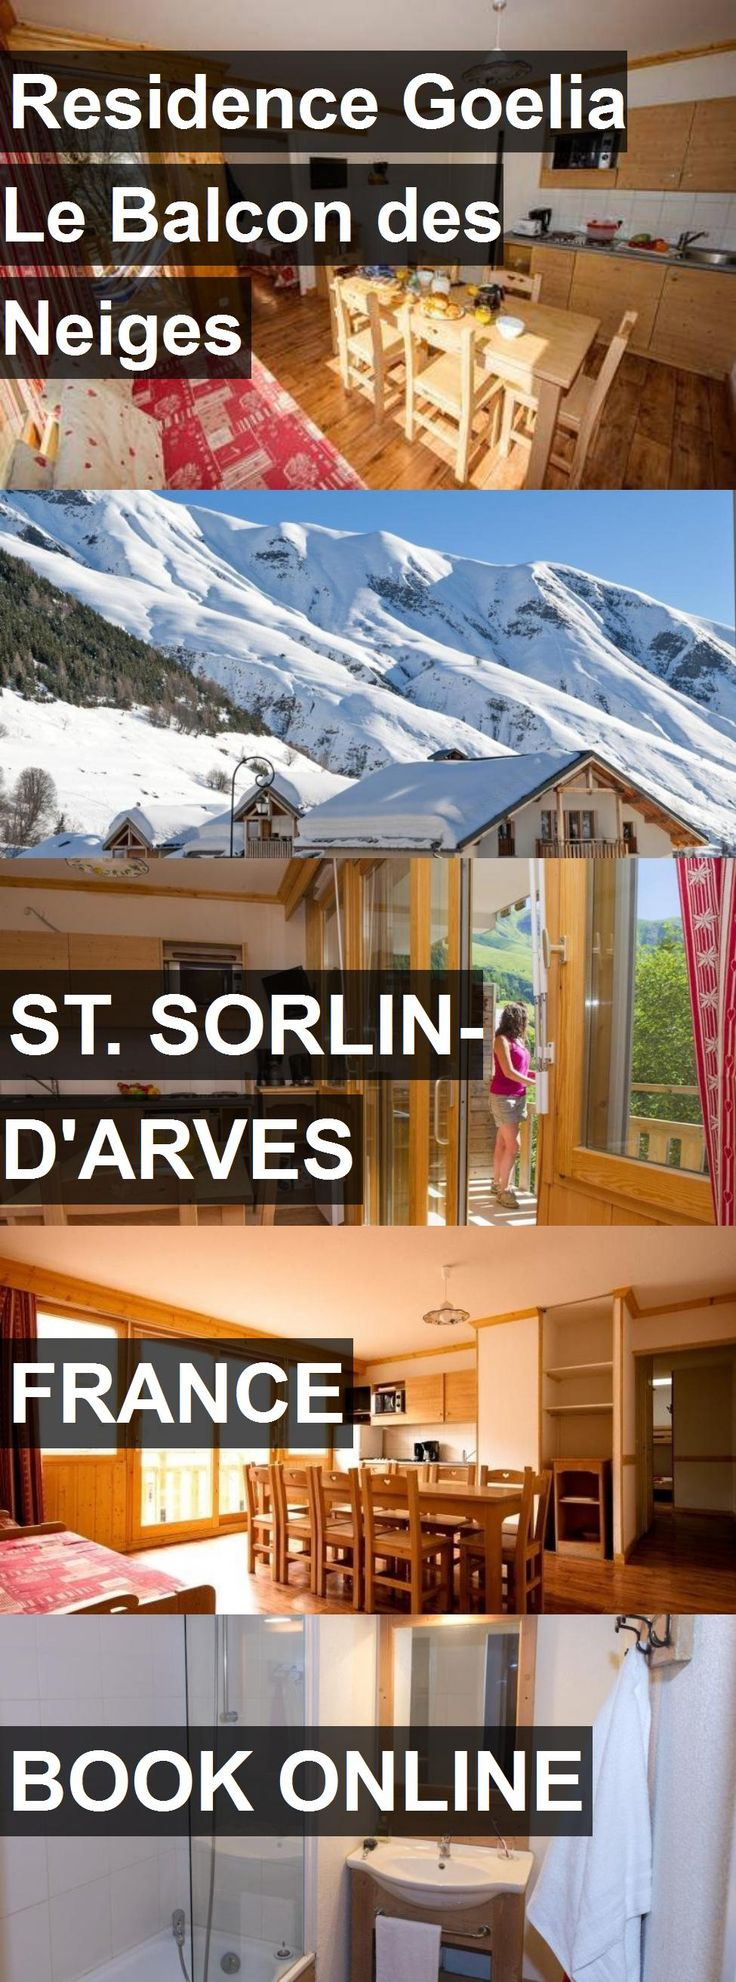 Hotel Residence Goelia Le Balcon des Neiges in St. Sorlin-d'Arves, France. For more information, photos, reviews and best prices please follow the link. #France #St.Sorlin-d'Arves #travel #vacation #hotel